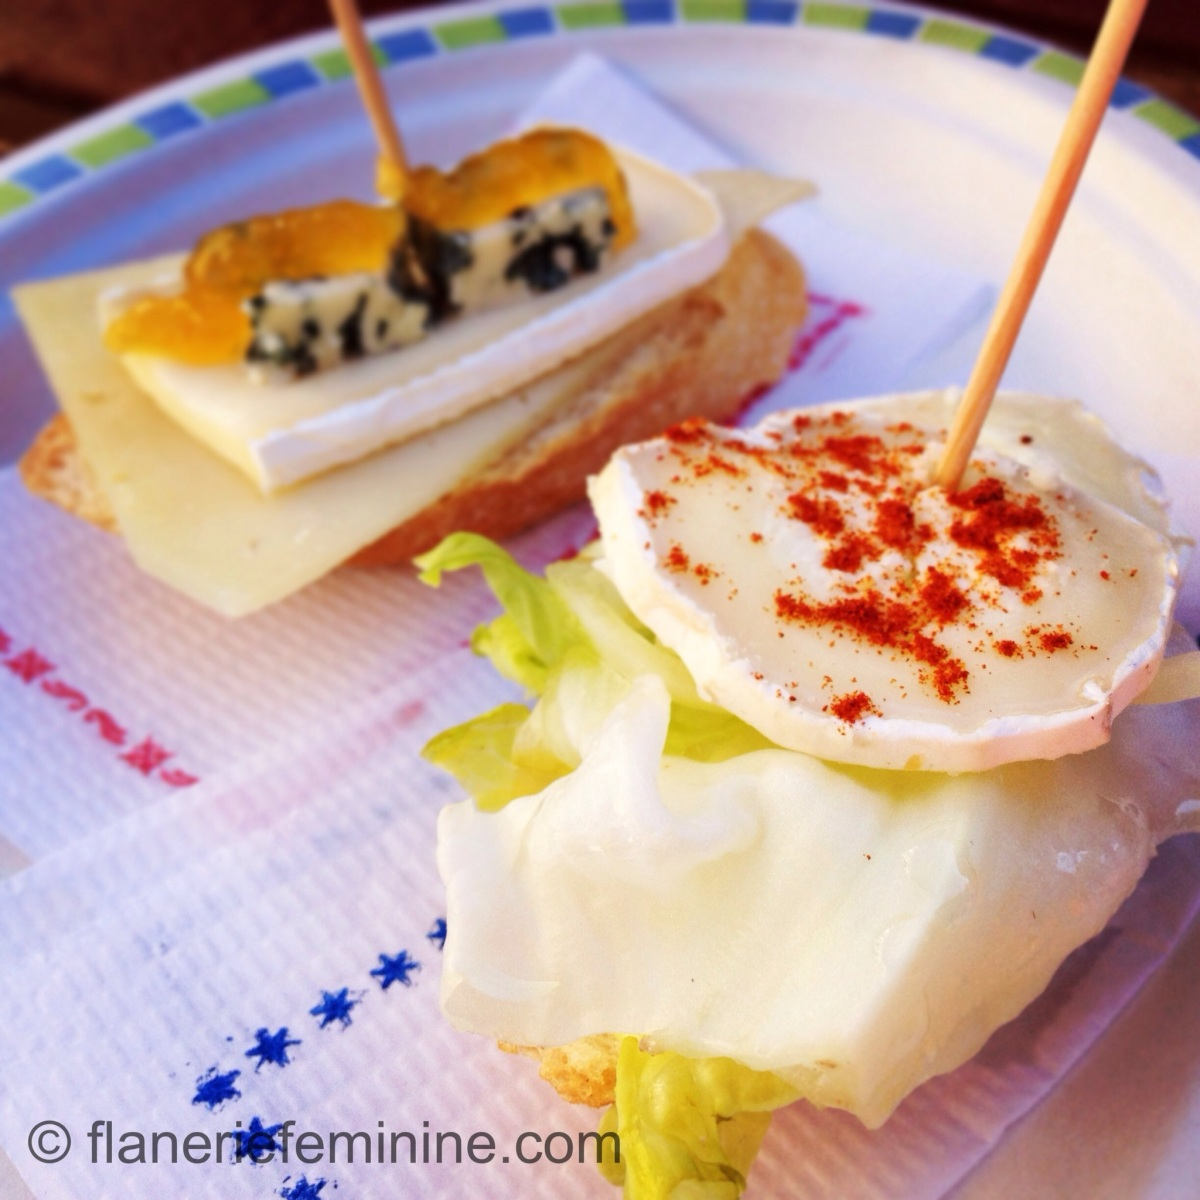 4 under the lens: Street food in Valencia